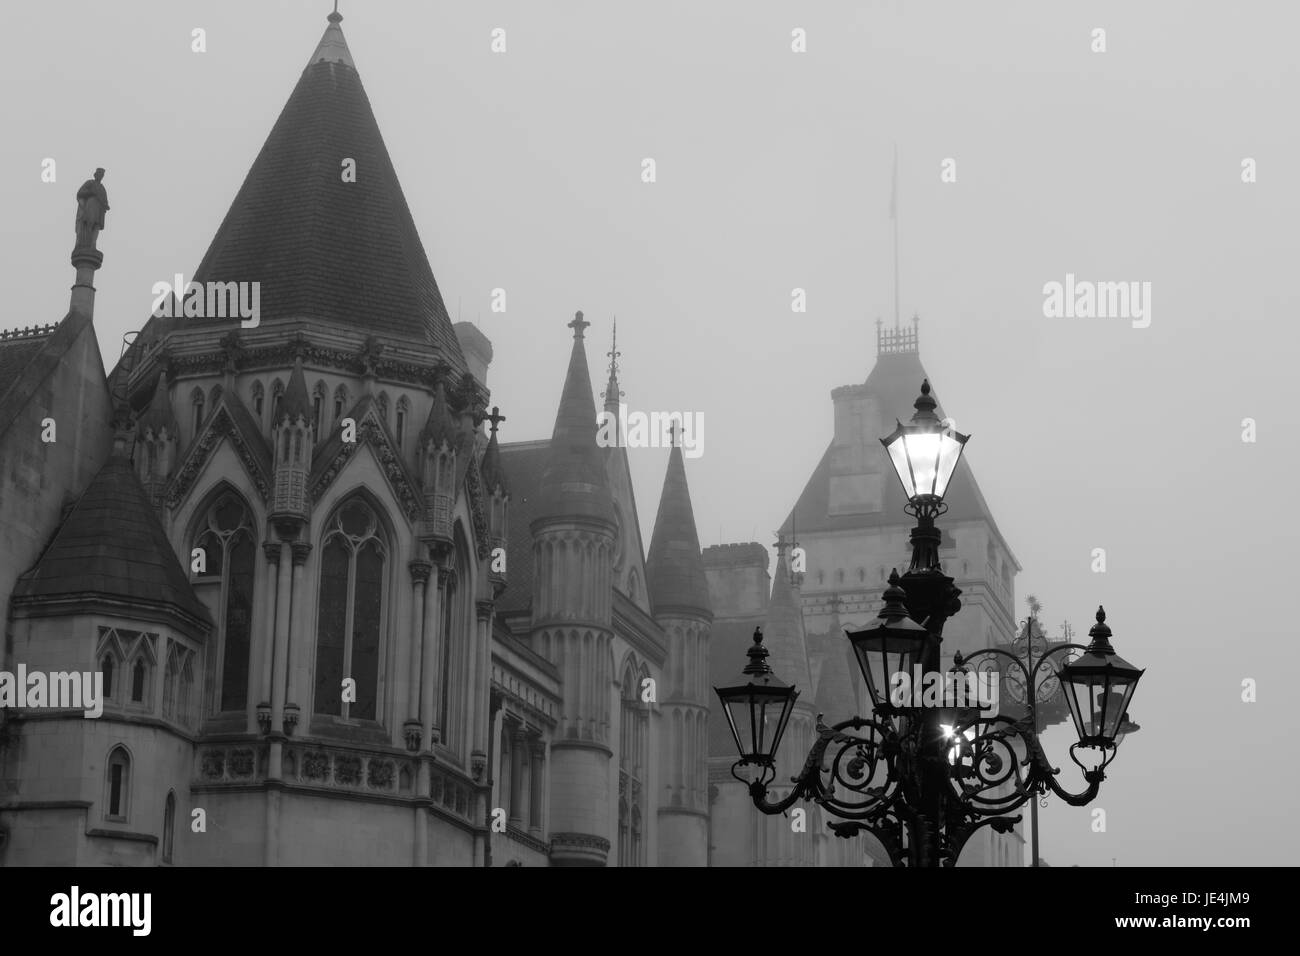 Royal Courts of Justice (Law Courts), The Stand, London, UK - Stock Image